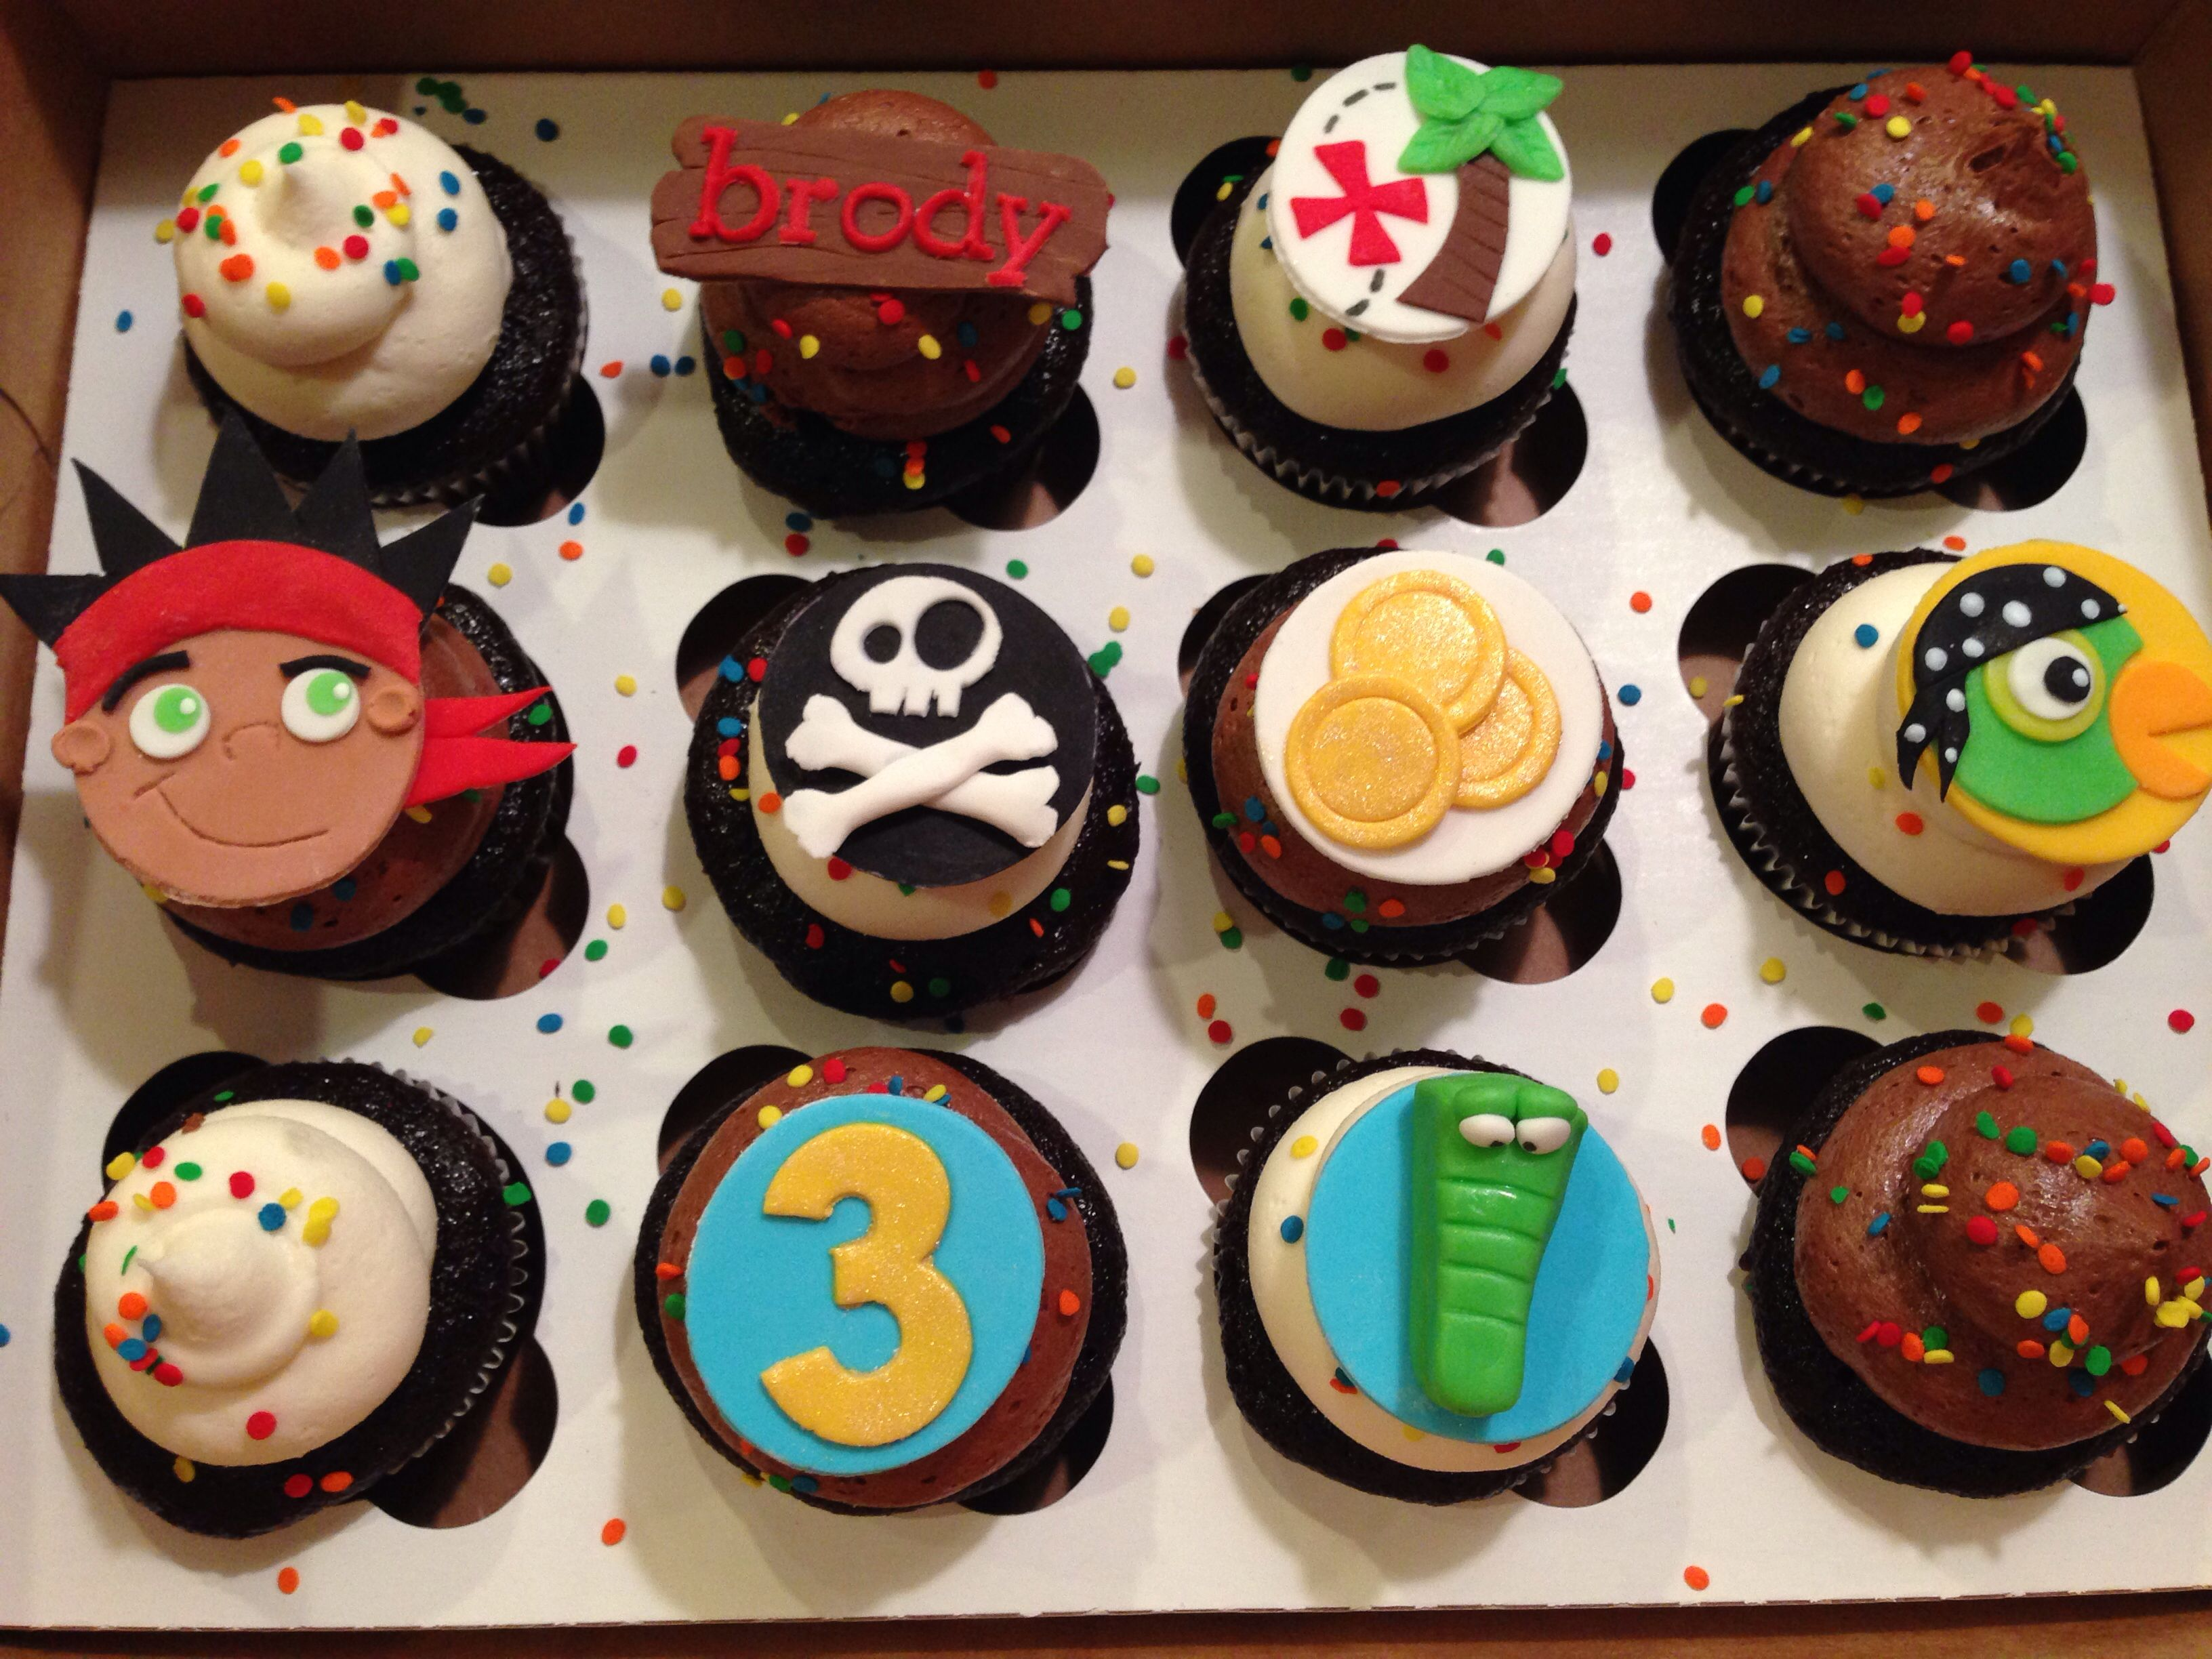 Cake ideas on pinterest pirate cakes marshmallow fondant and - Jake And The Neverland Pirates Birthday Cupcakes